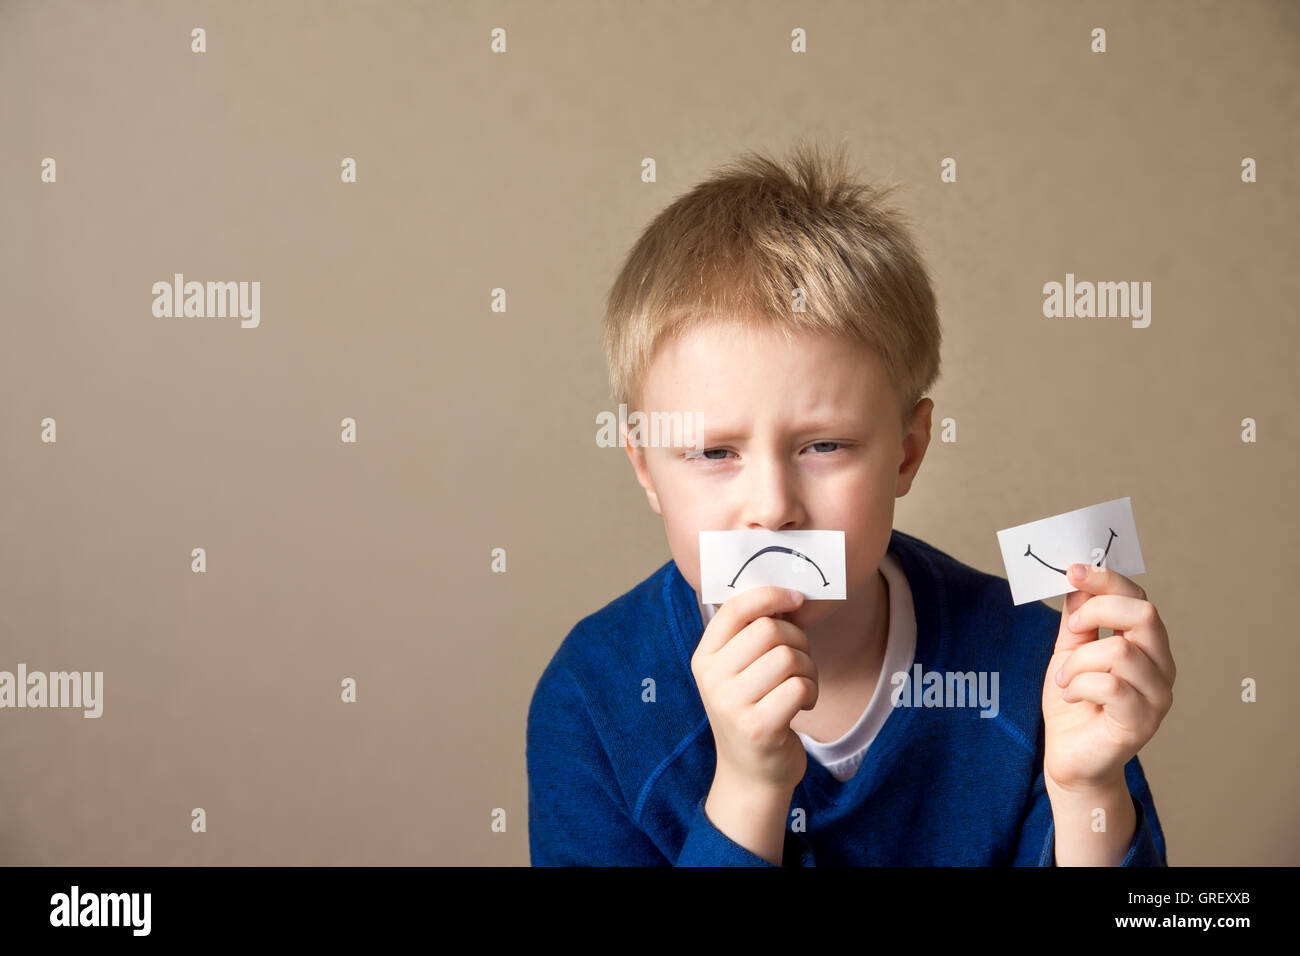 Young boy (teen) goes to stress, negative mood. Portrait with copy space - Stock Image